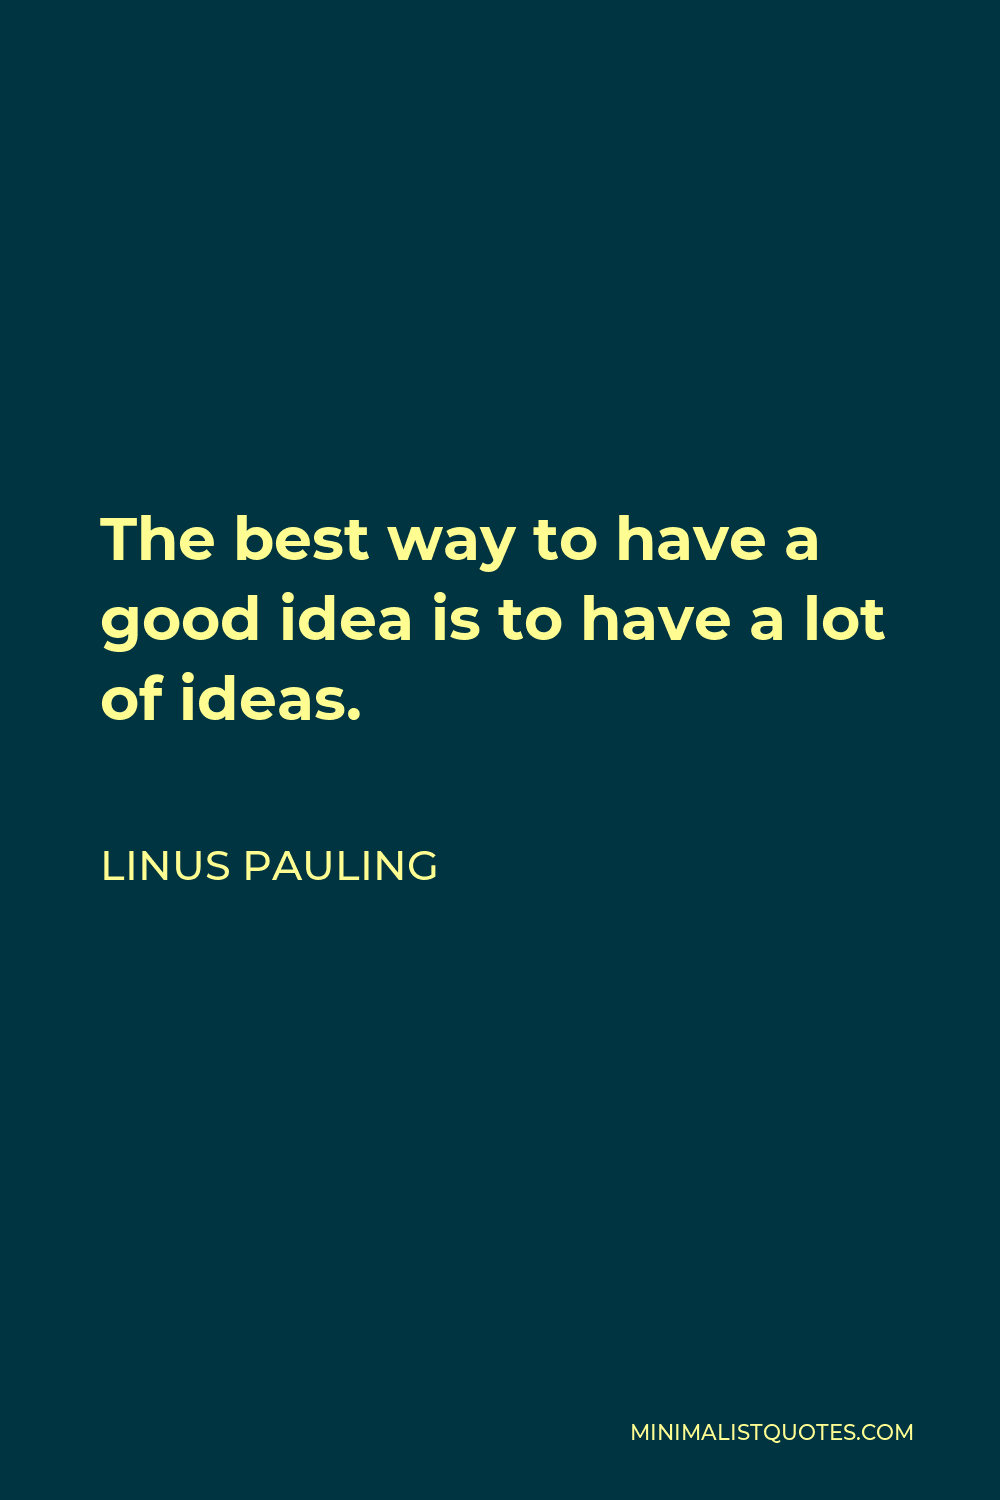 Linus Pauling Quote - The best way to have a good idea is to have a lot of ideas.